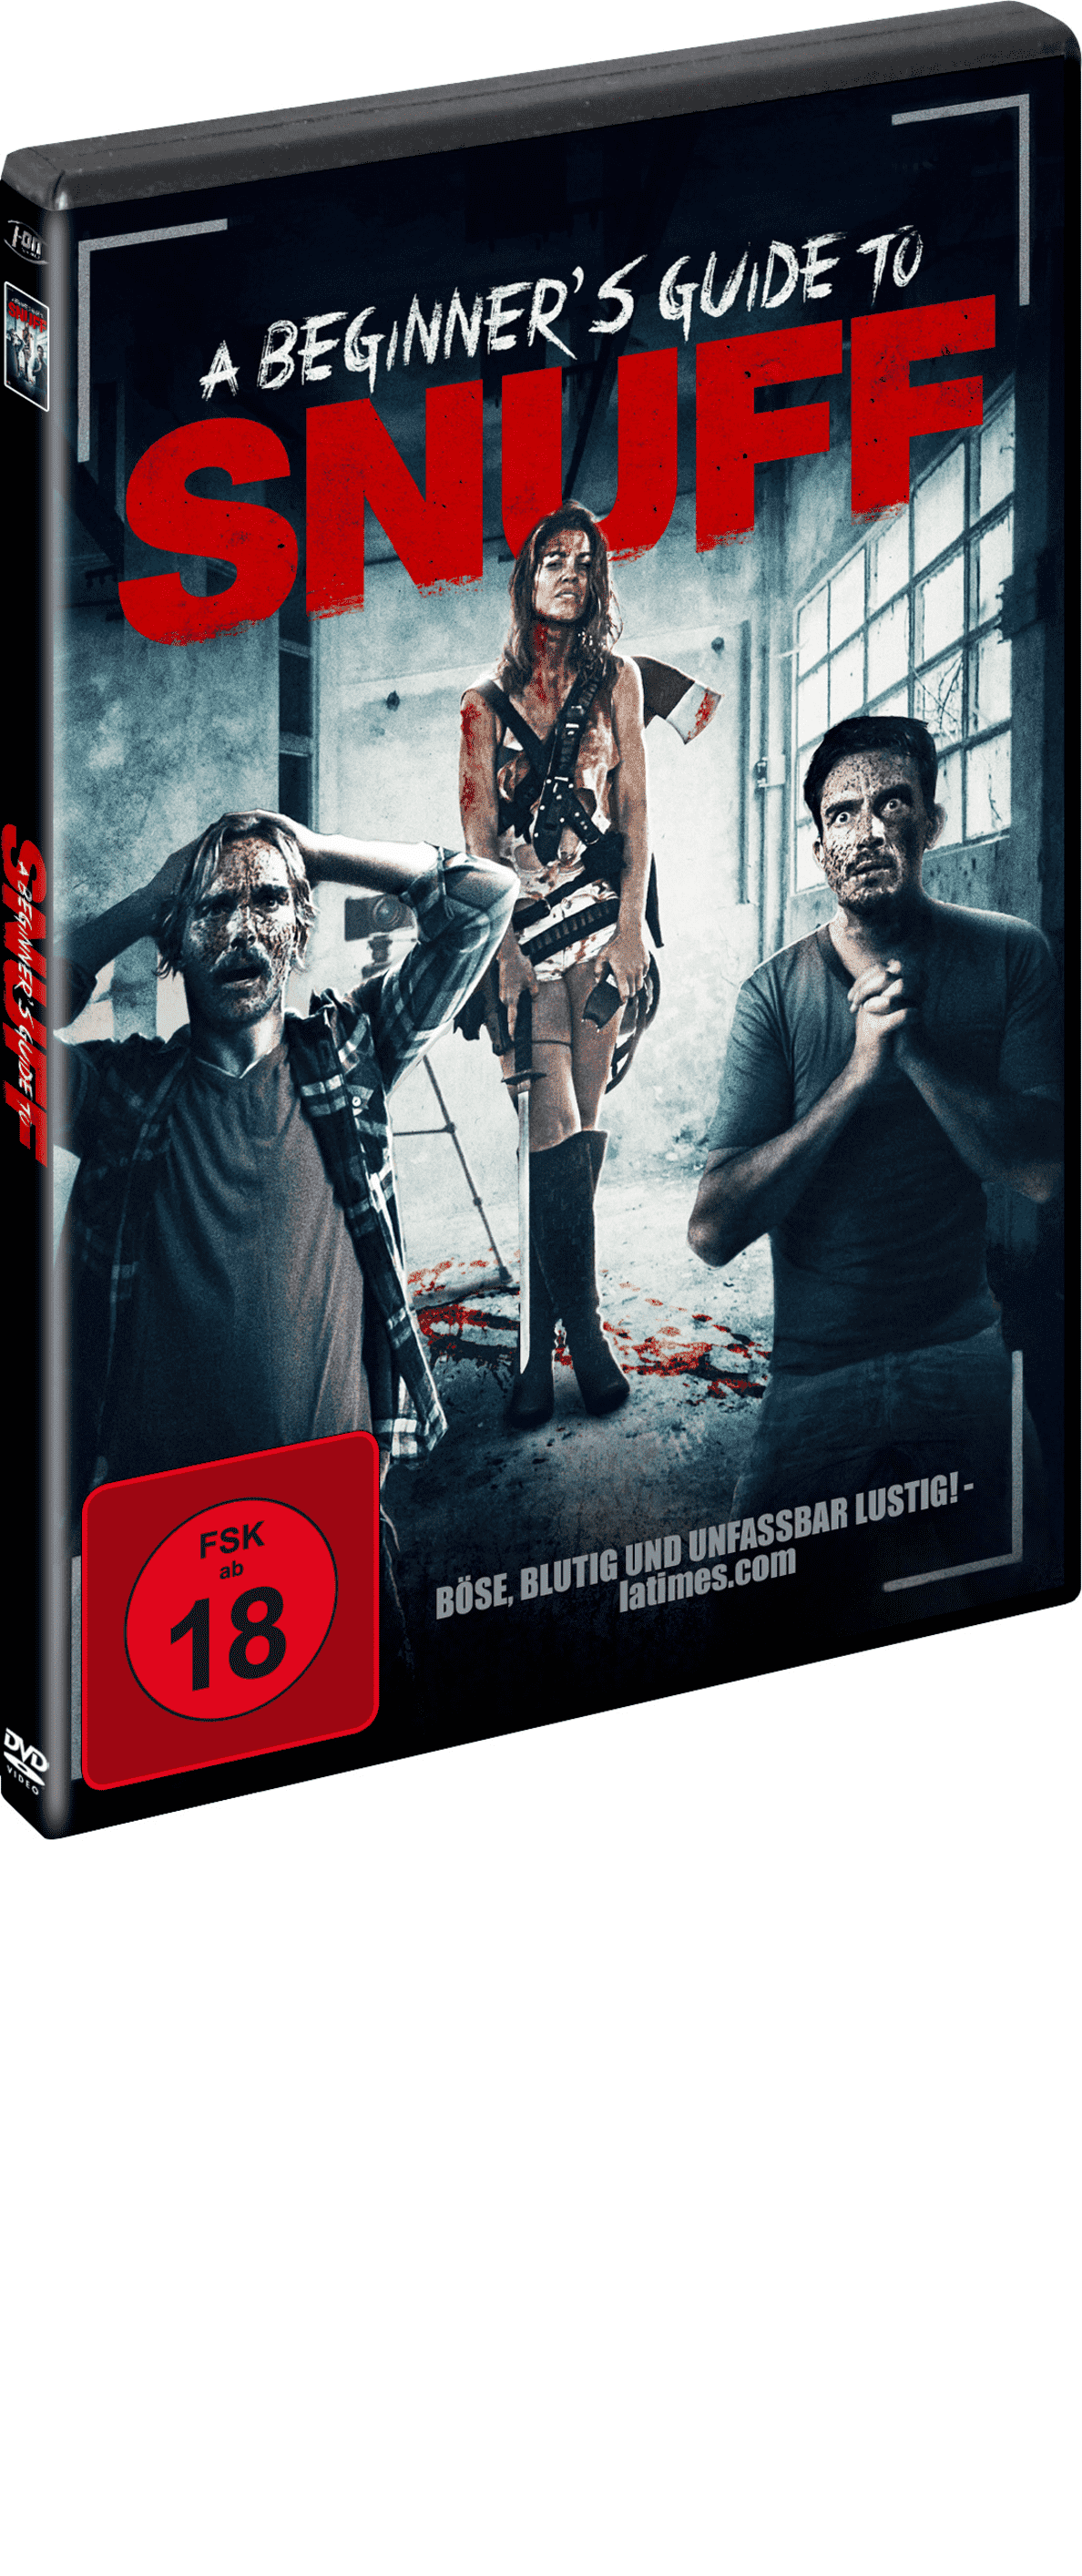 A Beginner´s Guide to Snuff auf DVD